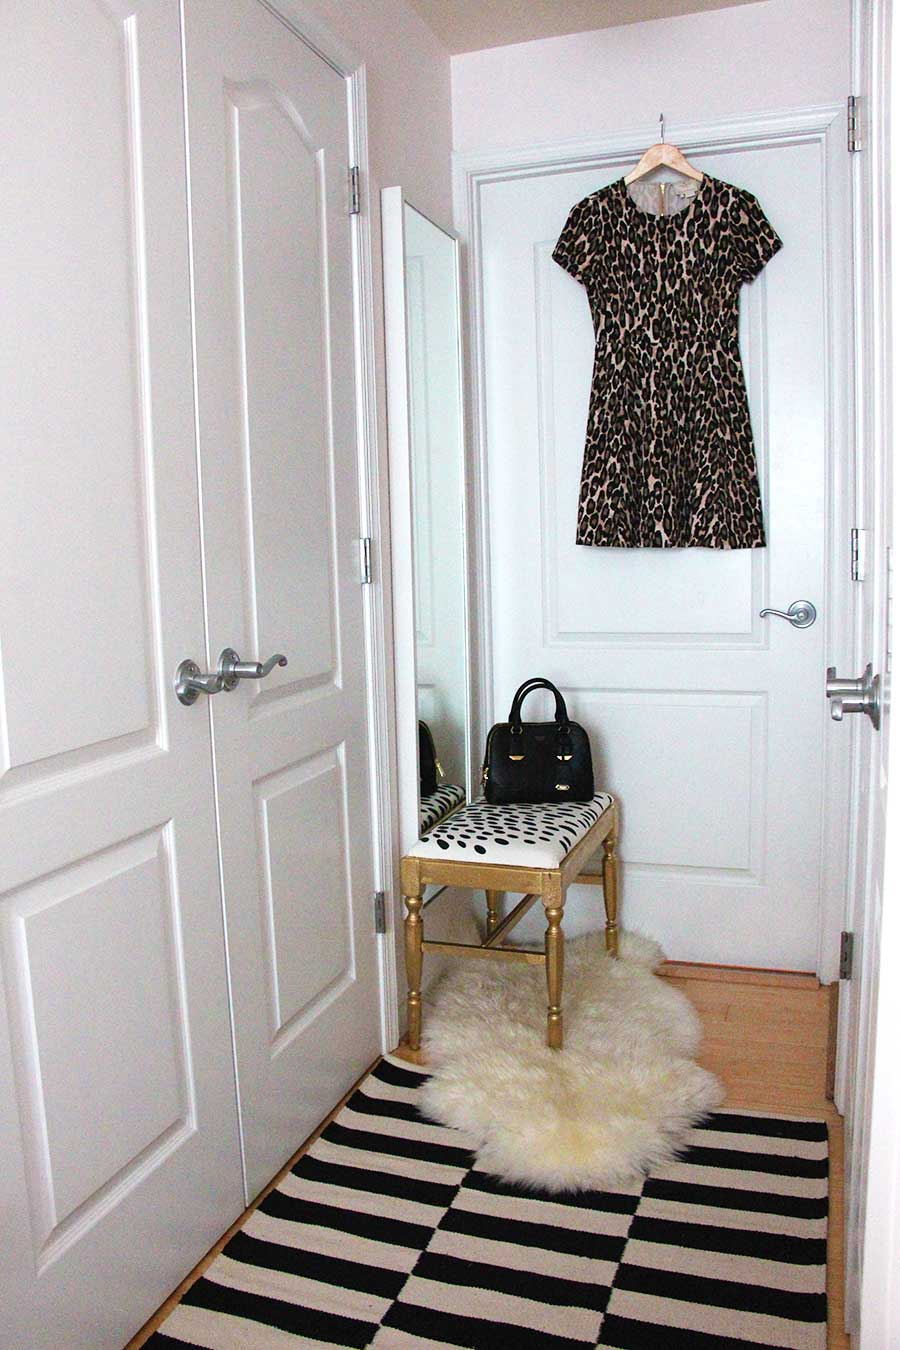 closet-styling-blush-walls-black-and-white-chic.jpg